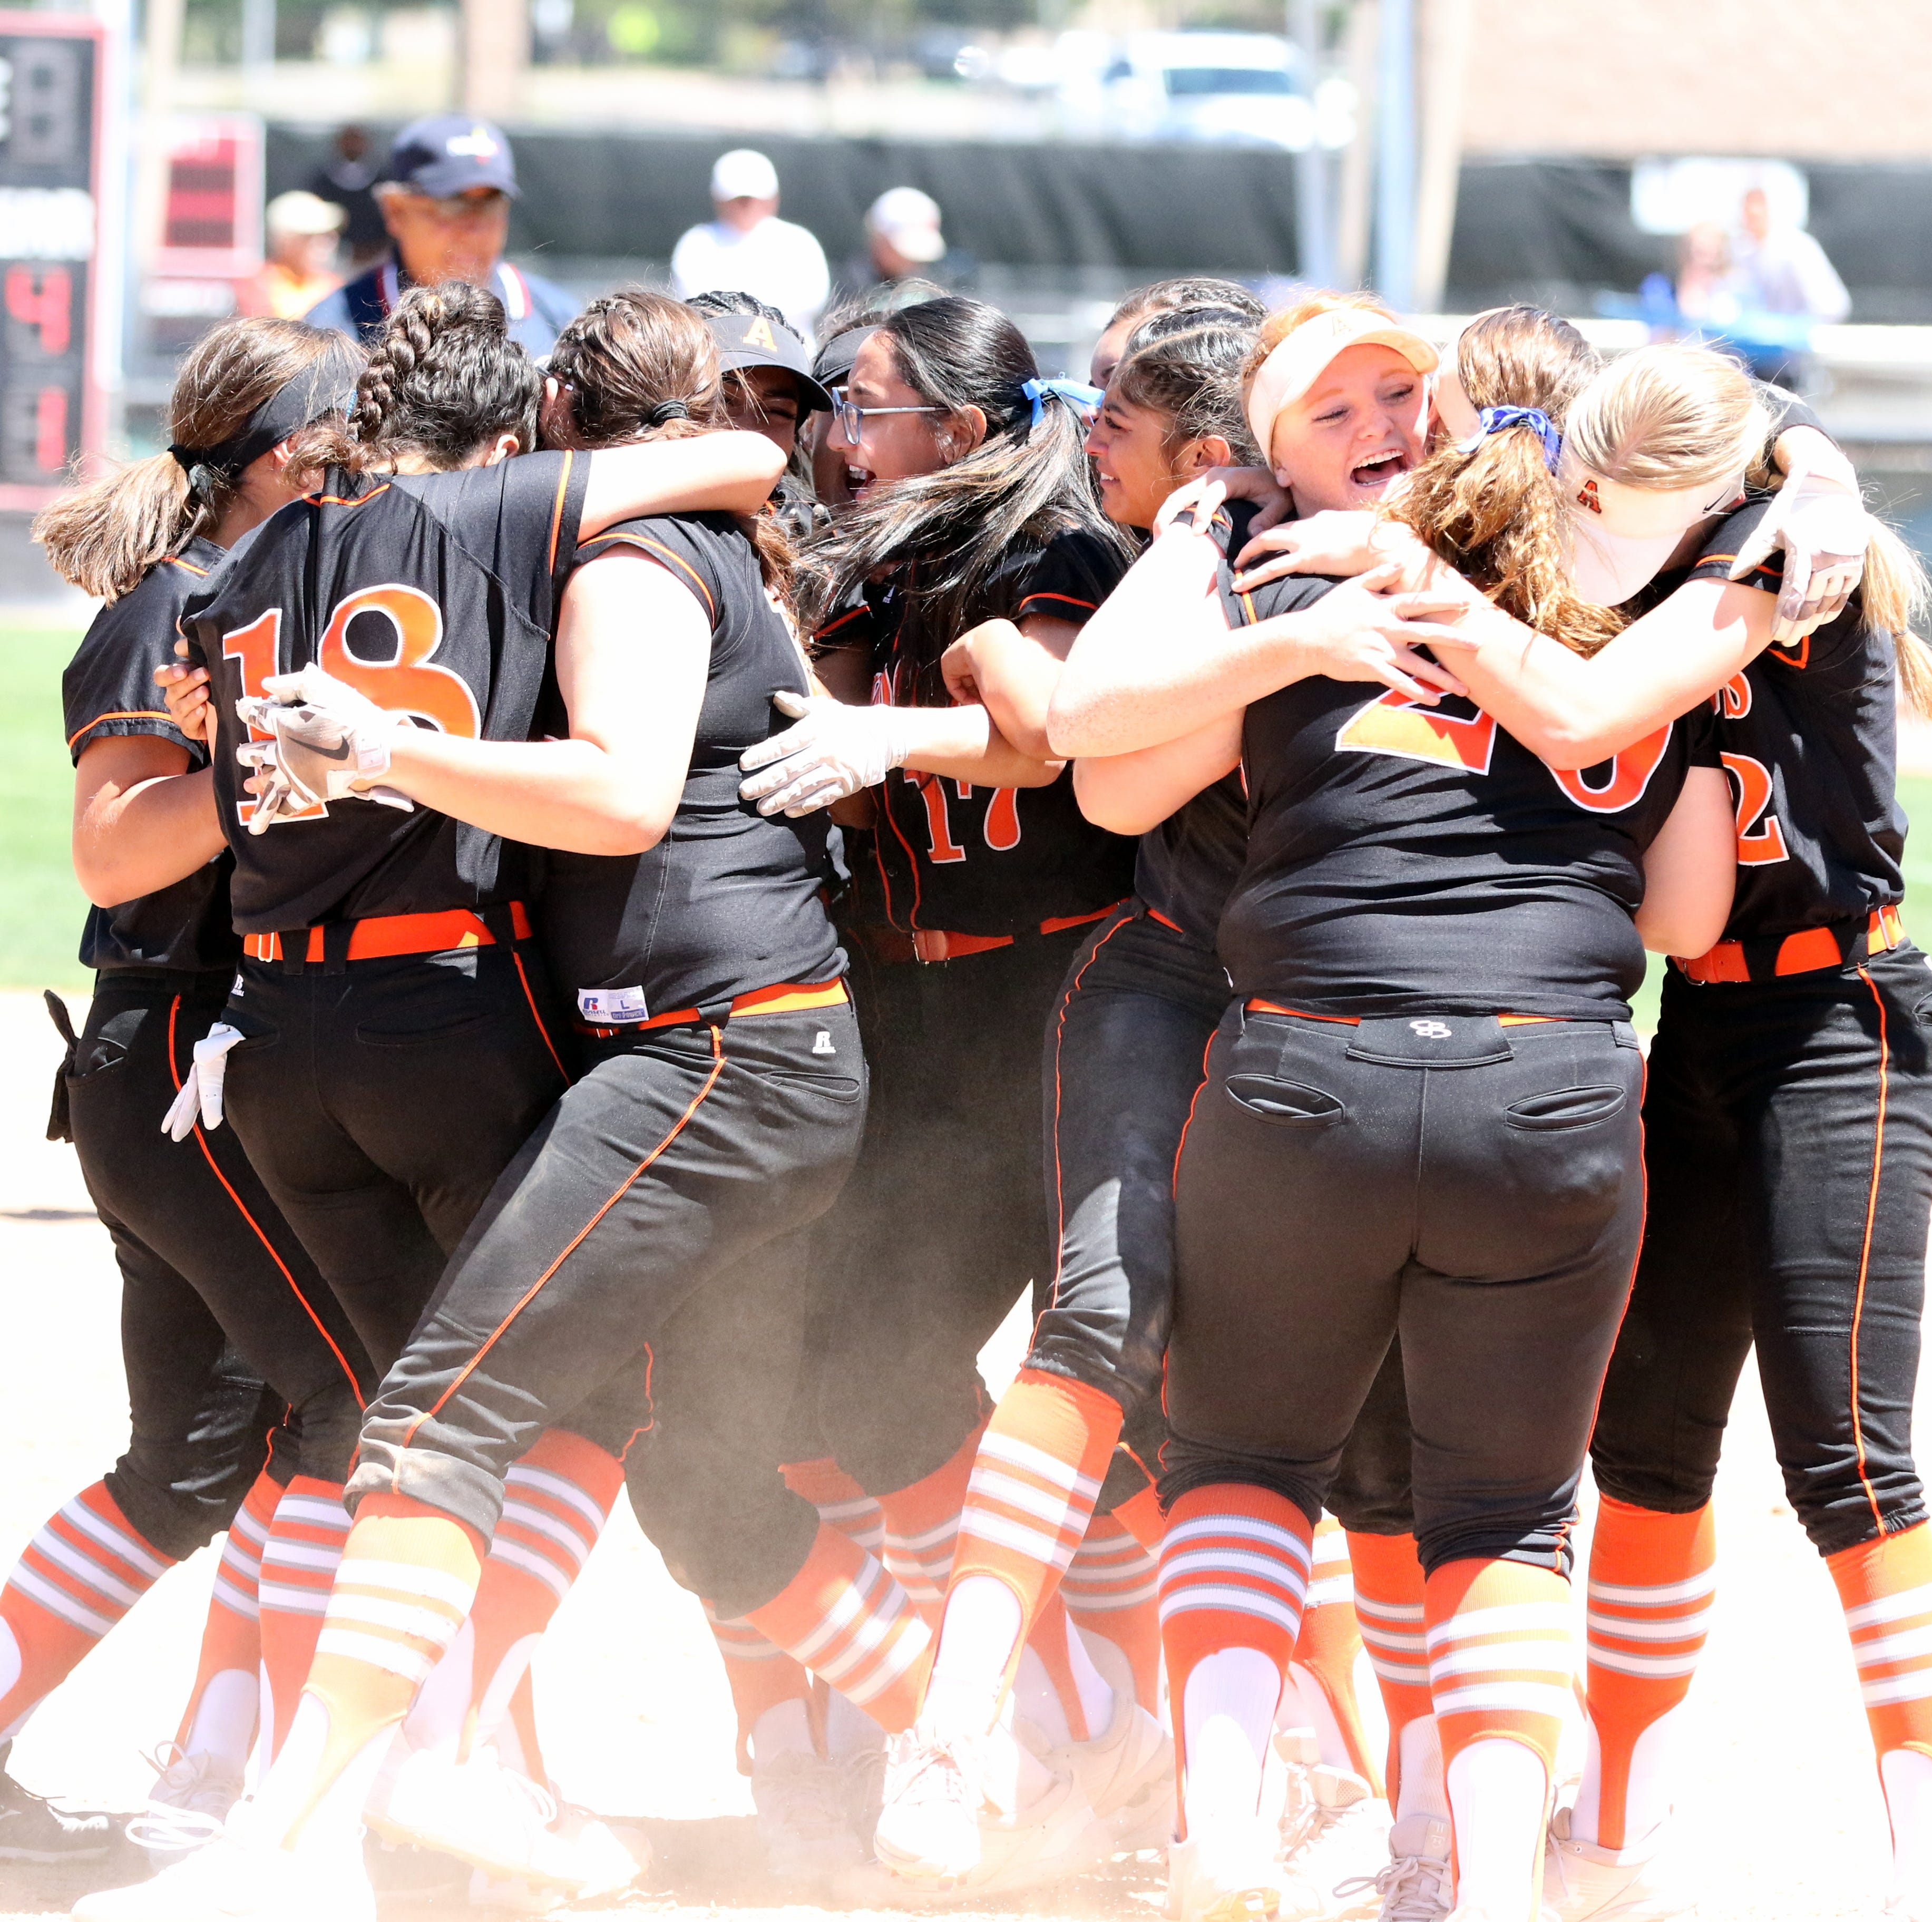 Sweet repeat for Artesia Lady Bulldogs as softball champs